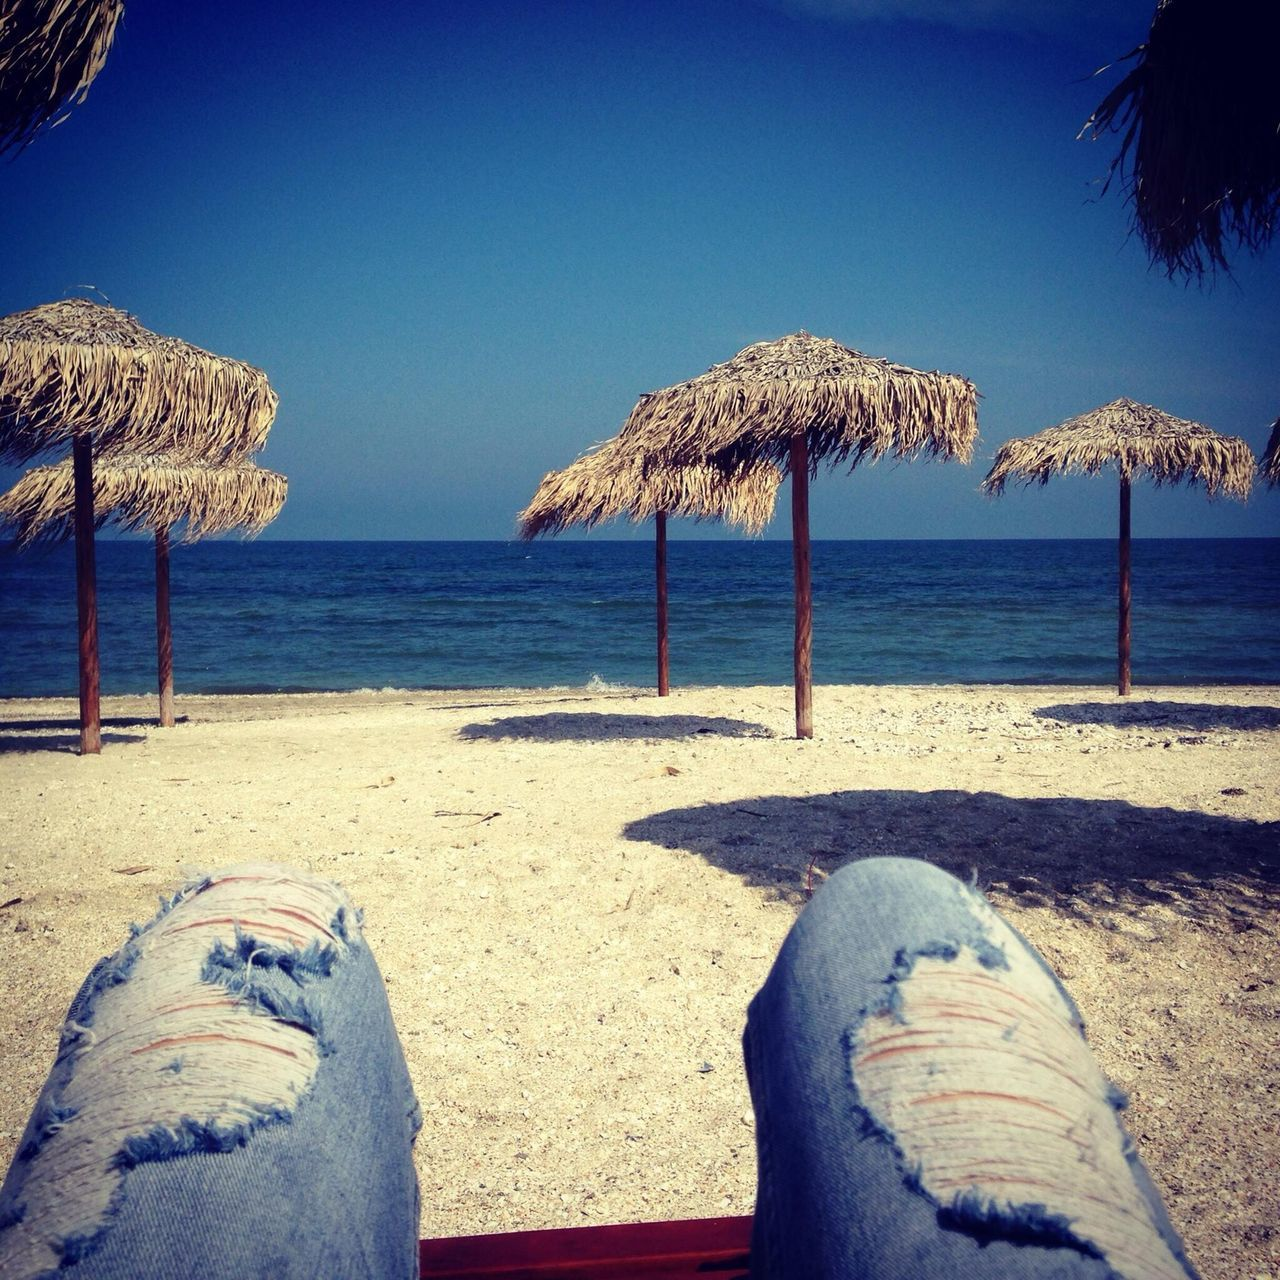 beach, sea, shore, water, day, sand, thatched roof, nature, outdoors, horizon over water, beauty in nature, tranquility, tranquil scene, blue, human leg, vacations, sunlight, scenics, clear sky, low section, one person, sky, people